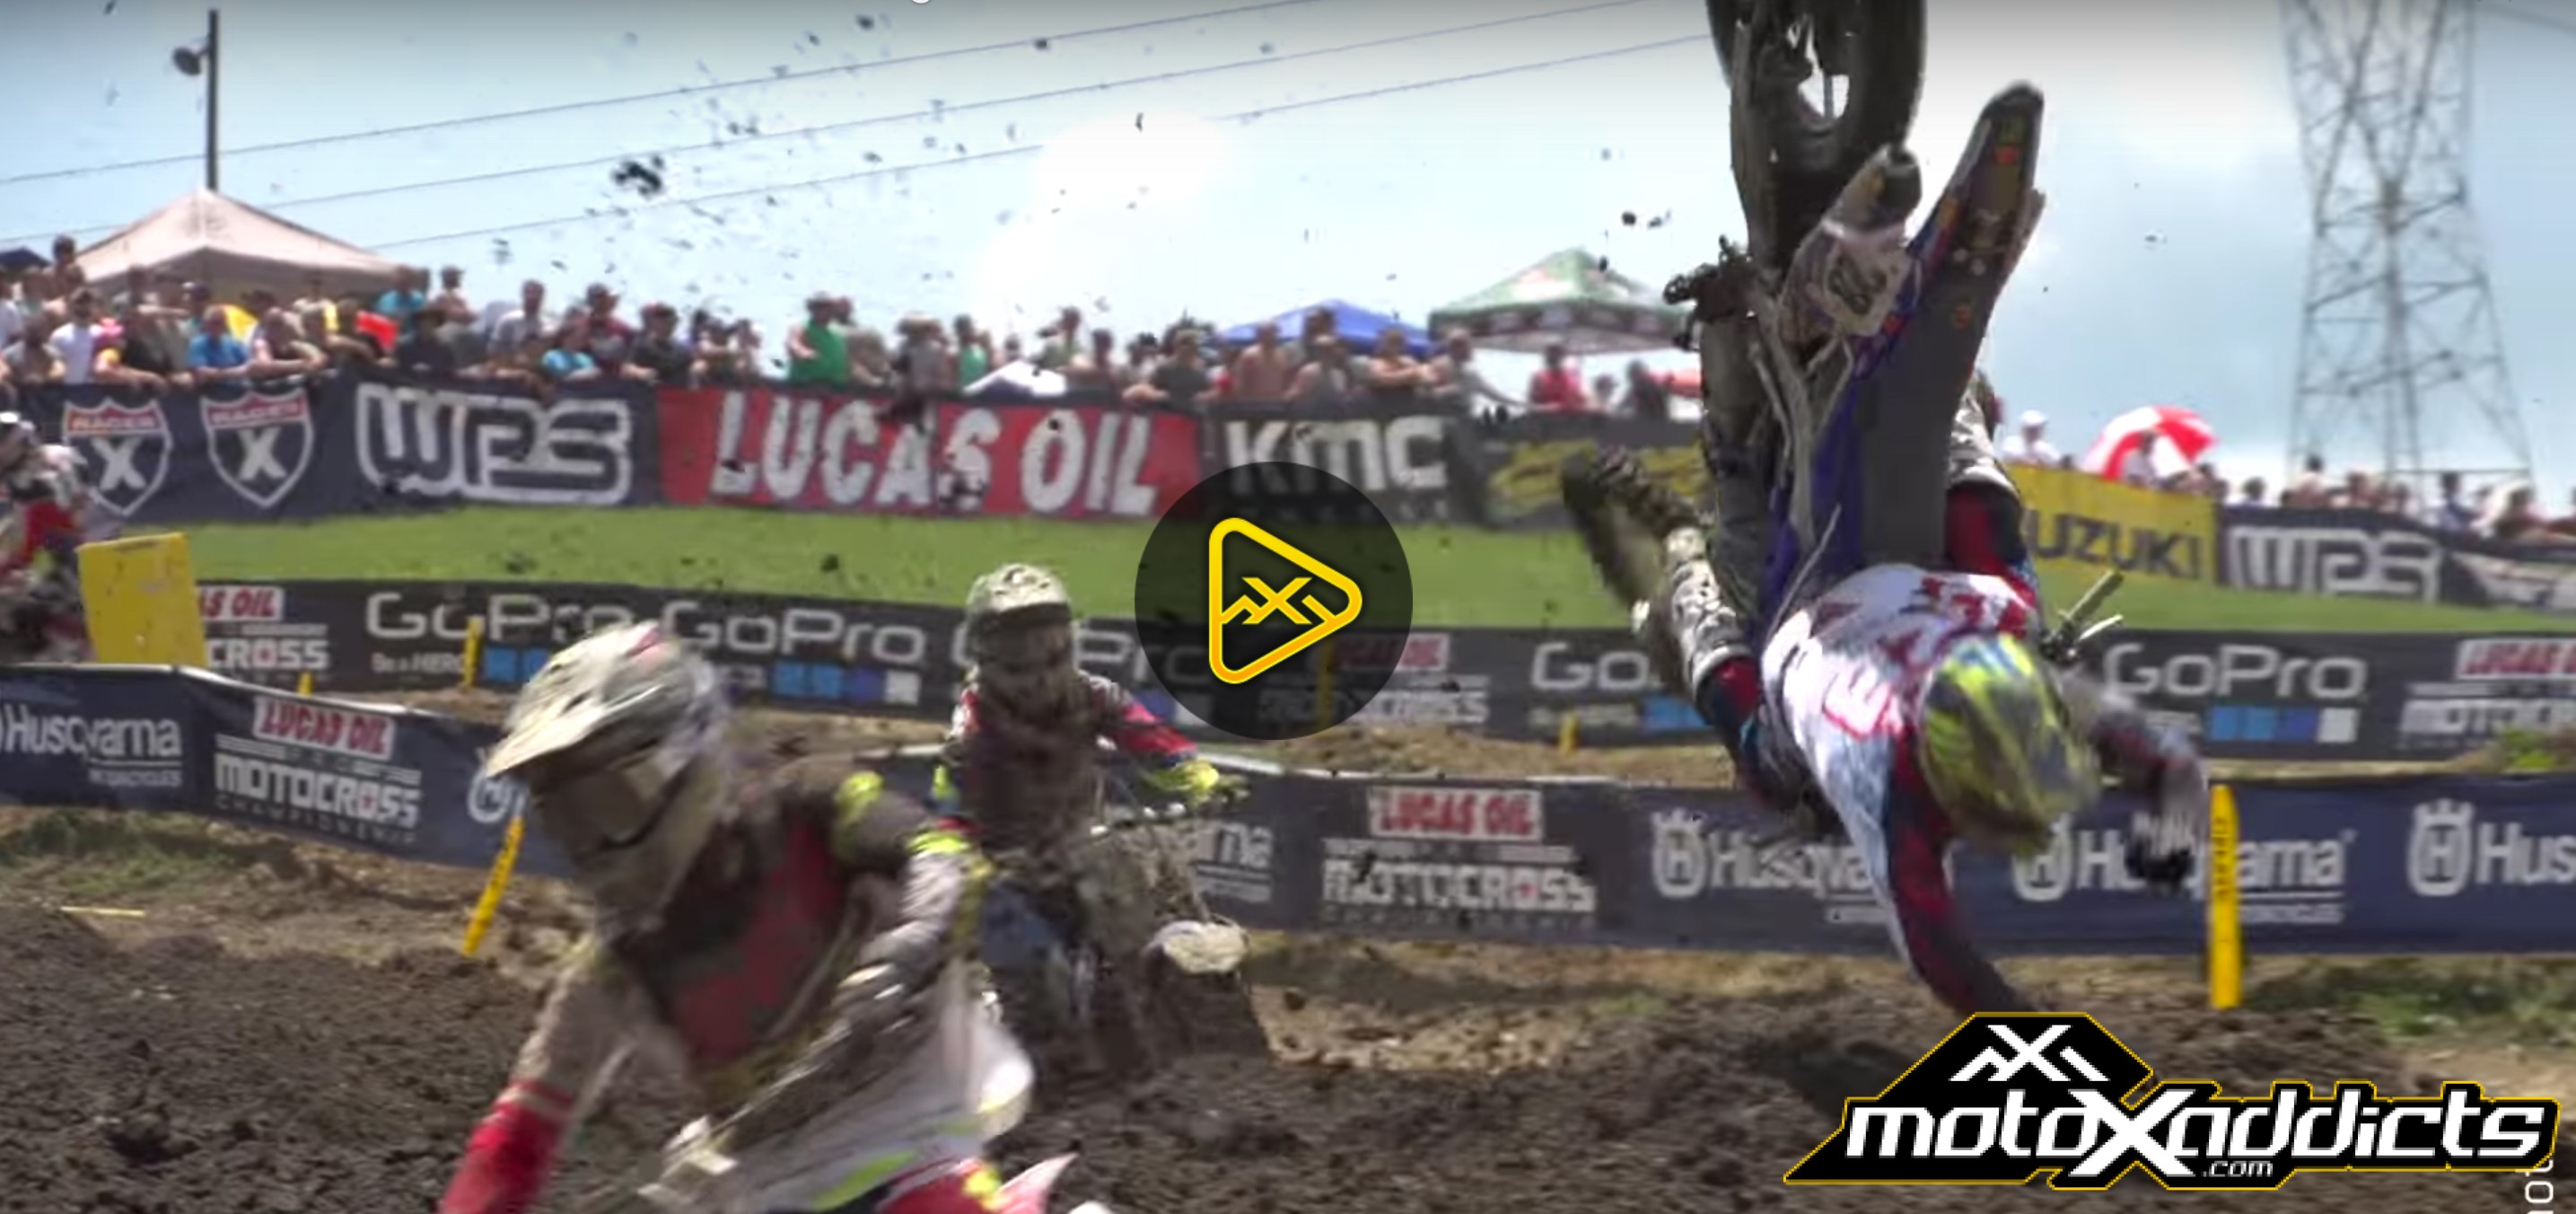 Weston Peick Crash: 2016 High Point National